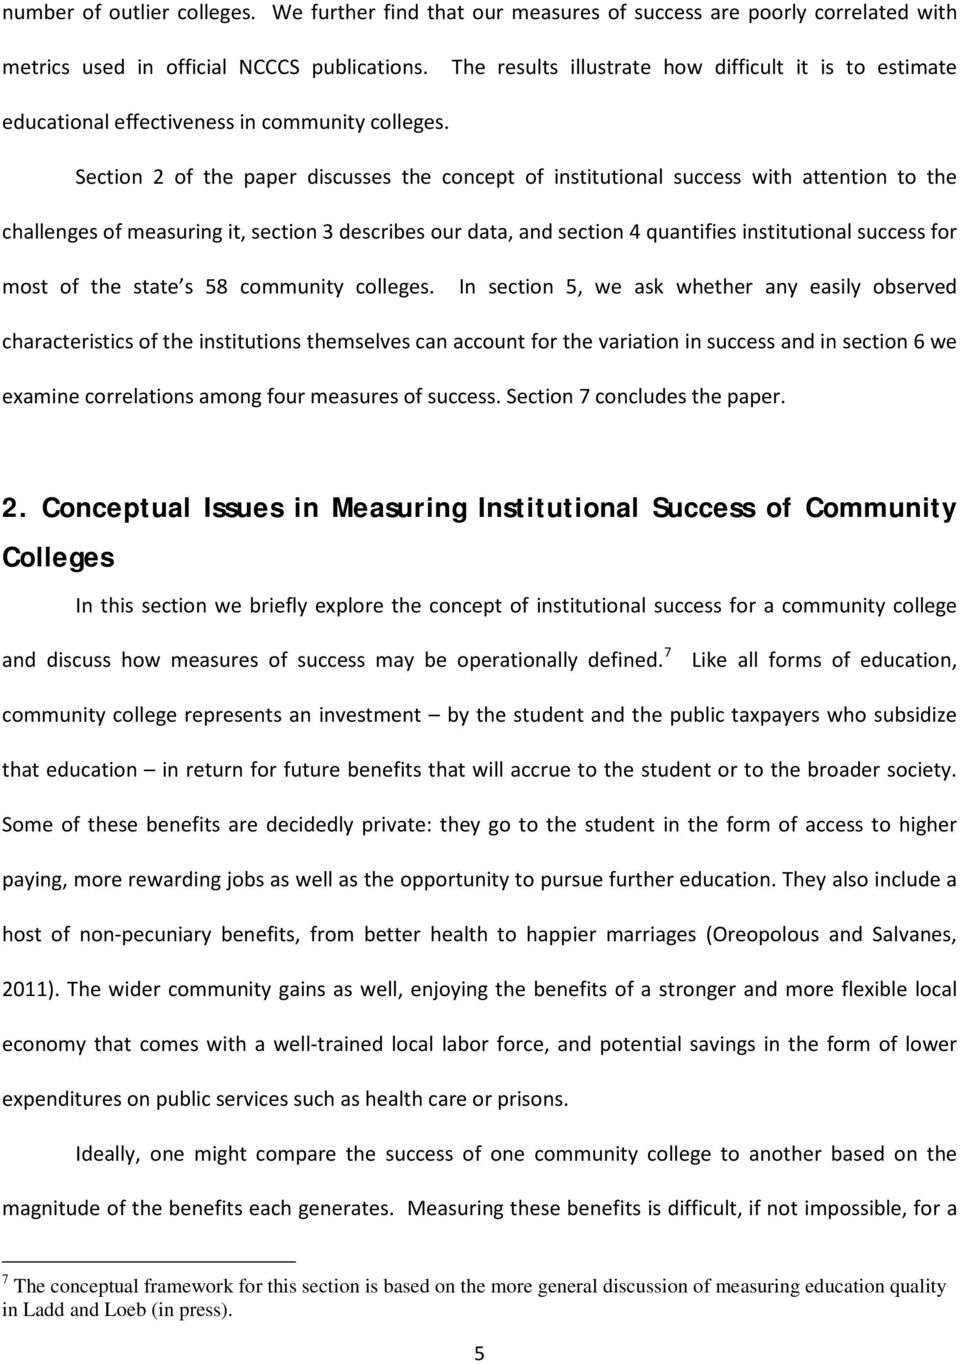 Section 2 of the paper discusses the concept of institutional success with attention to the challenges of measuring it, section 3 describes our data, and section 4 quantifies institutional success